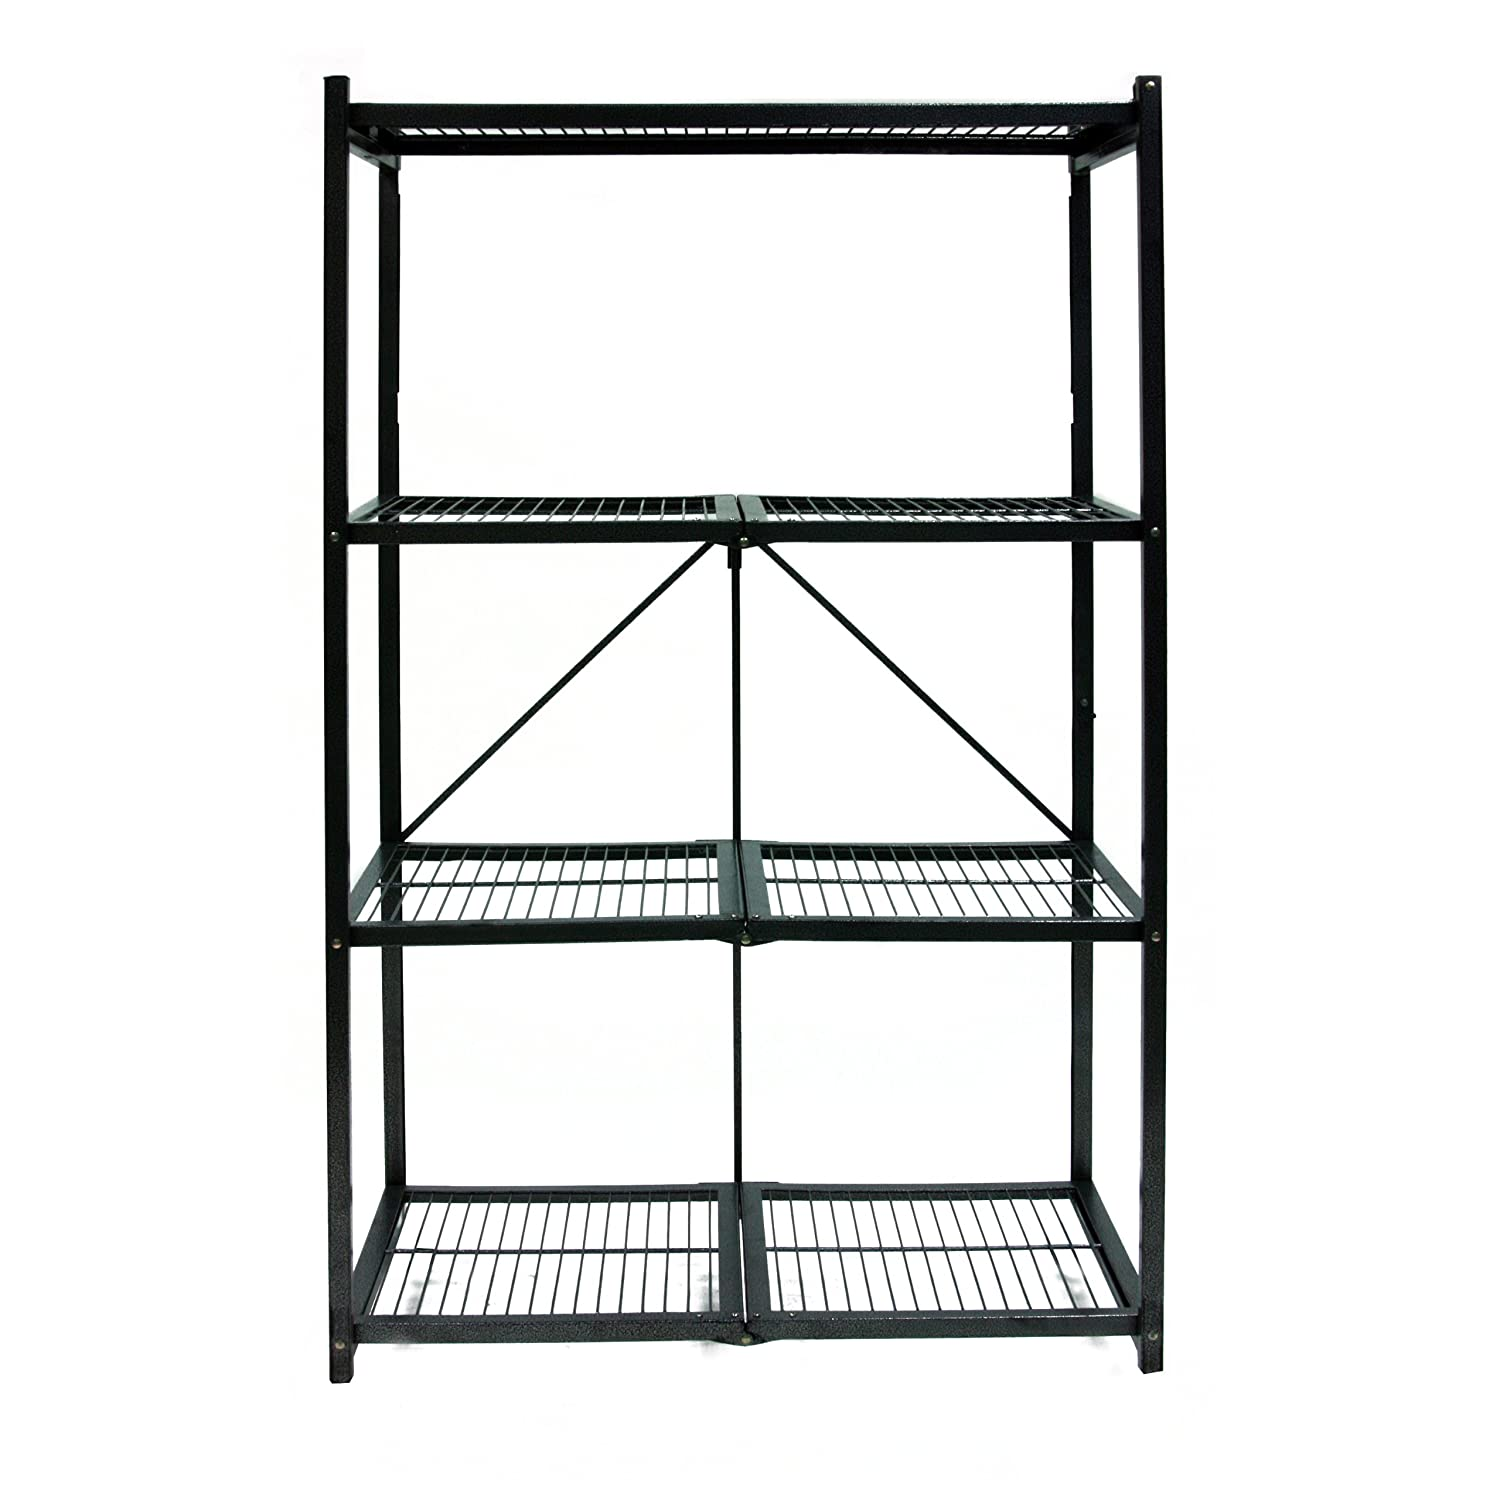 Origami R5-01 General Purpose 4-Shelf Steel Collapsible Storage Rack, Large